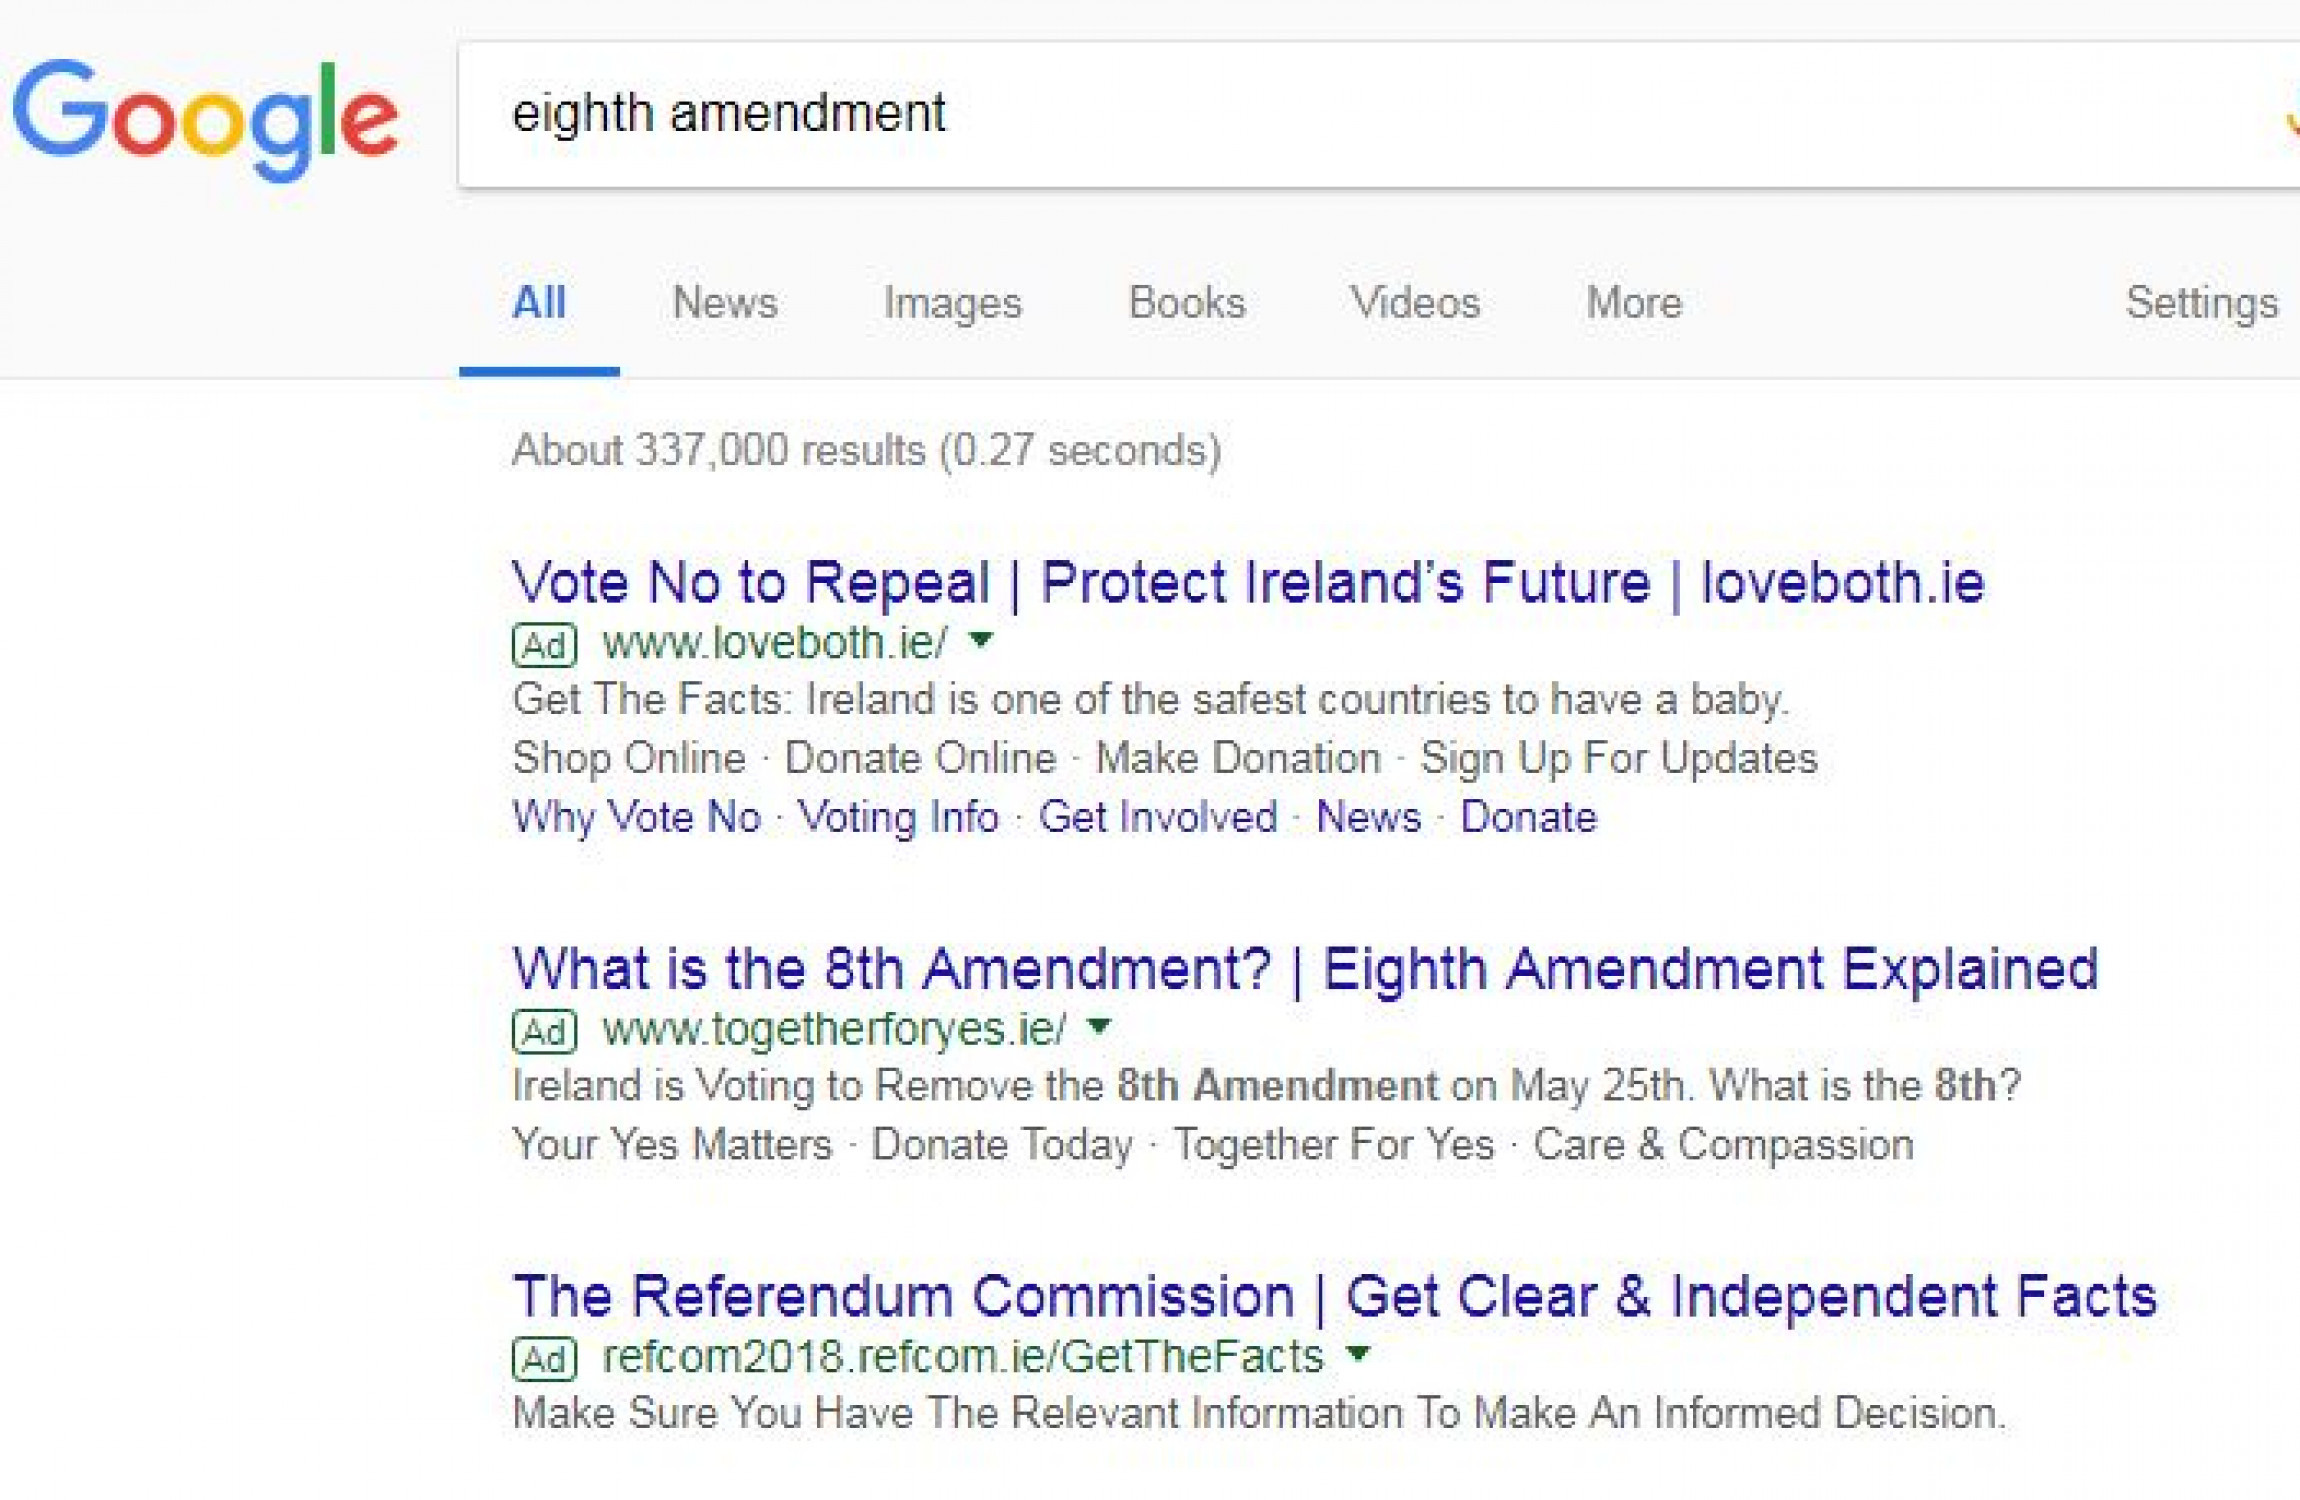 Google blocks all online ads related to Eighth Amendment referendum